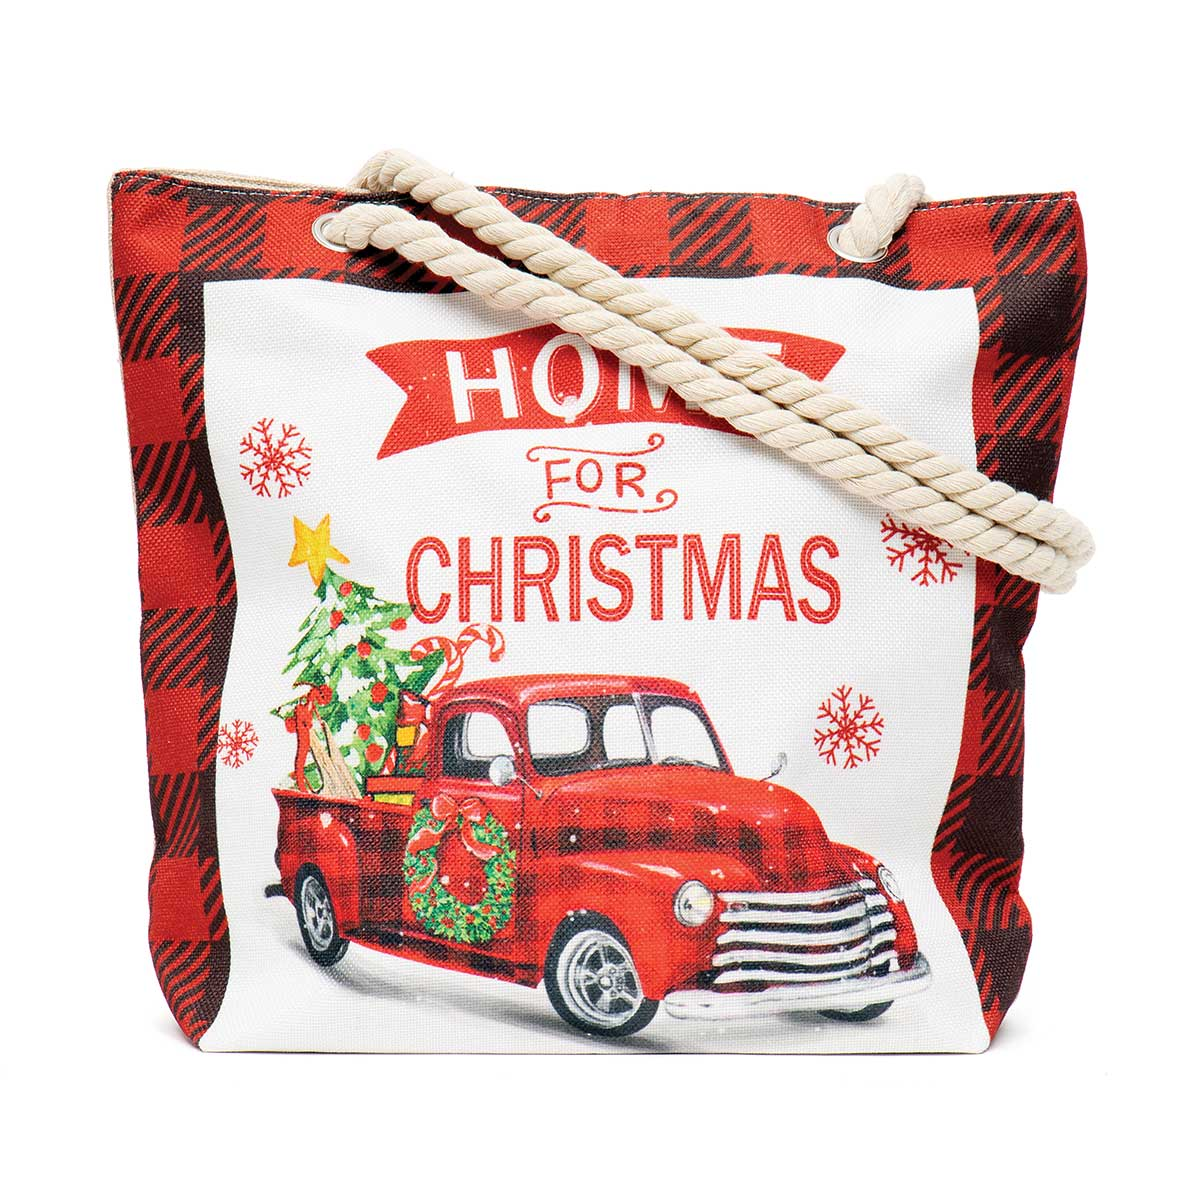 Home for Christmas Truck Tapestry Bag